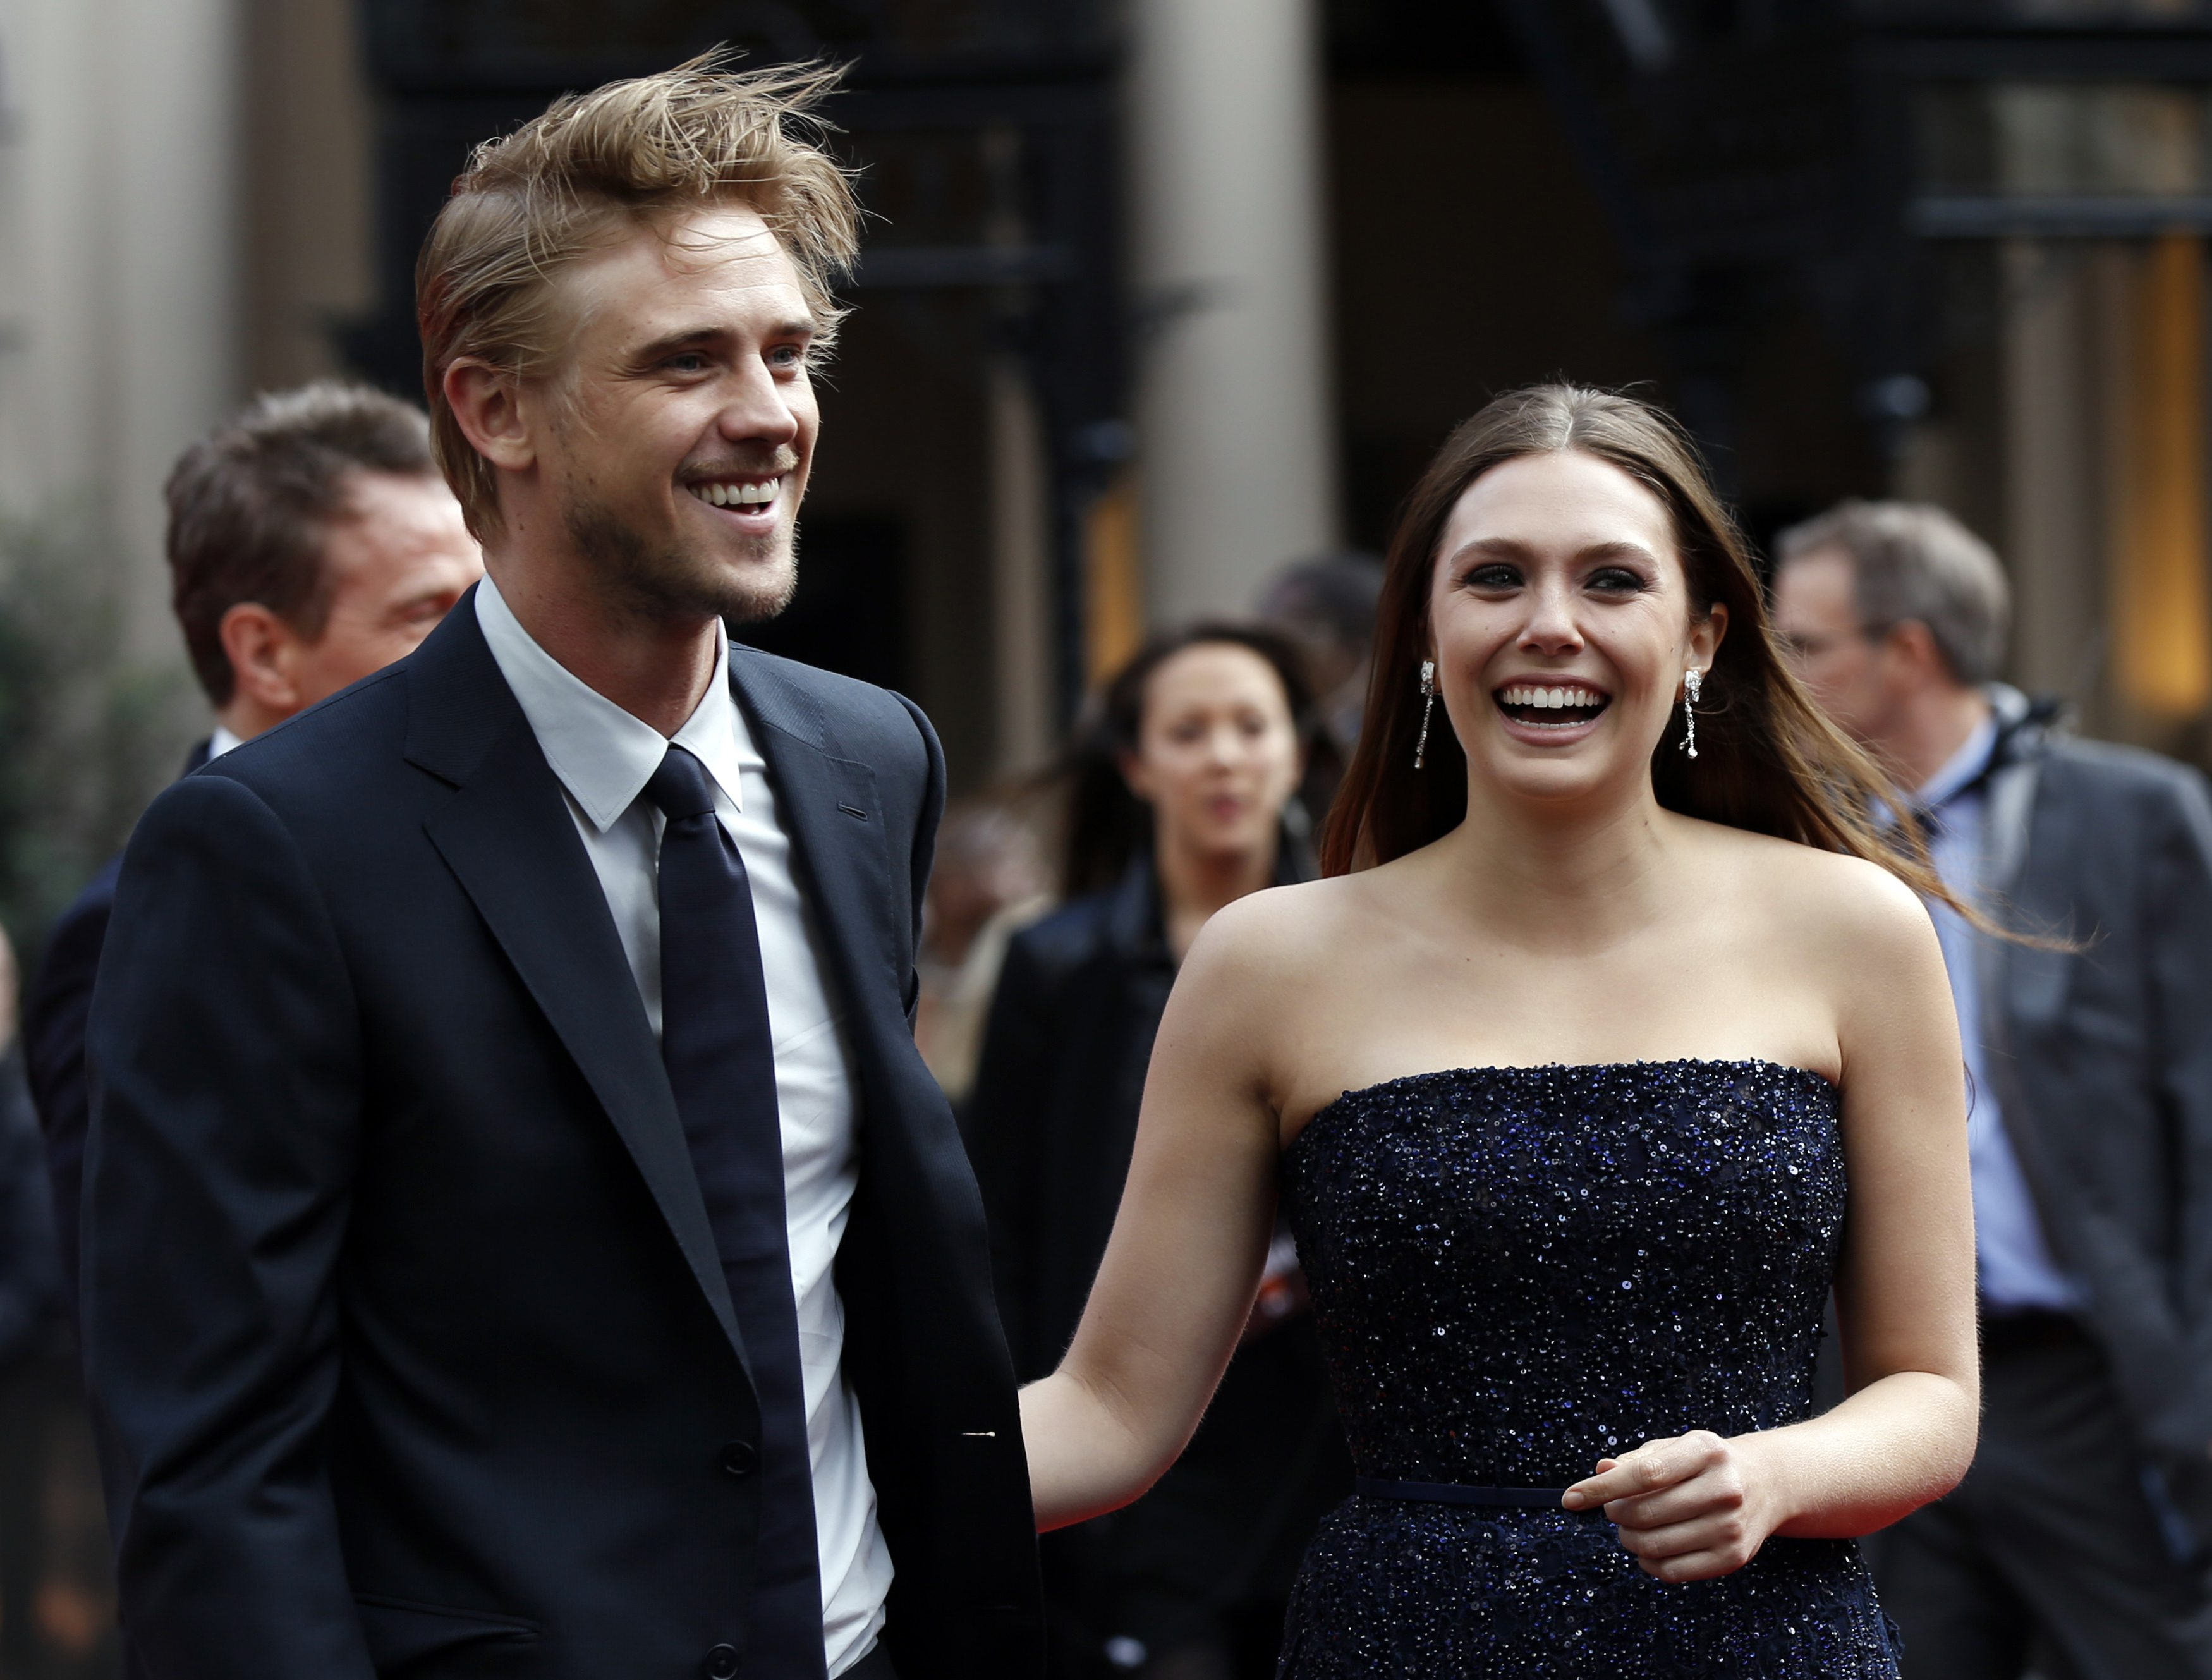 Cast member Elizabeth Olsen and her fiance Boyd Holbrook attend the Godzilla Premiere in central London